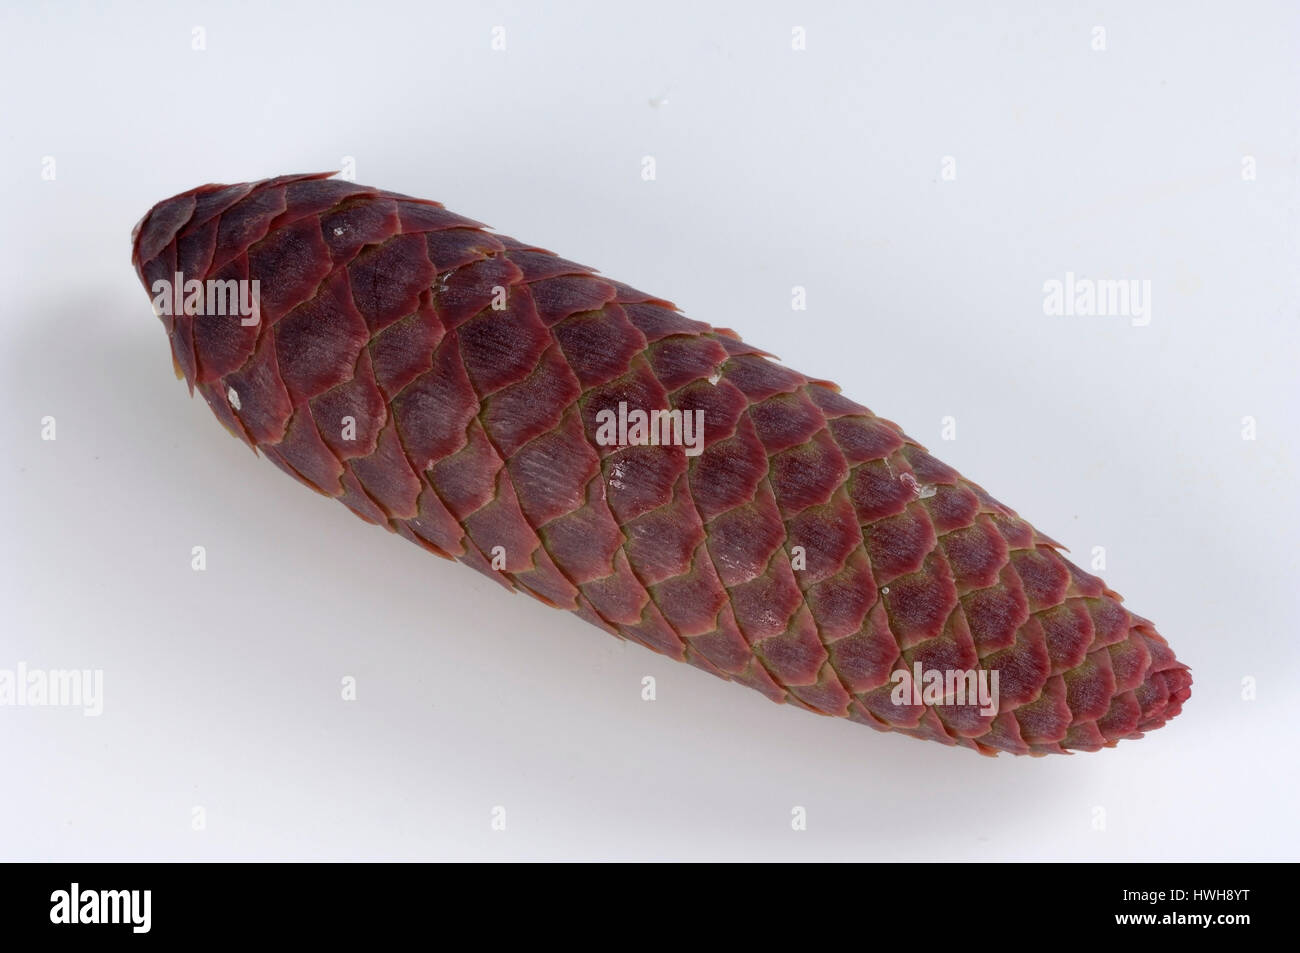 Norway Spruce, cone, Picea abies cut out, object, common spruce, plug, Picea abies free plate, cone / (Picea abies) - Stock Image